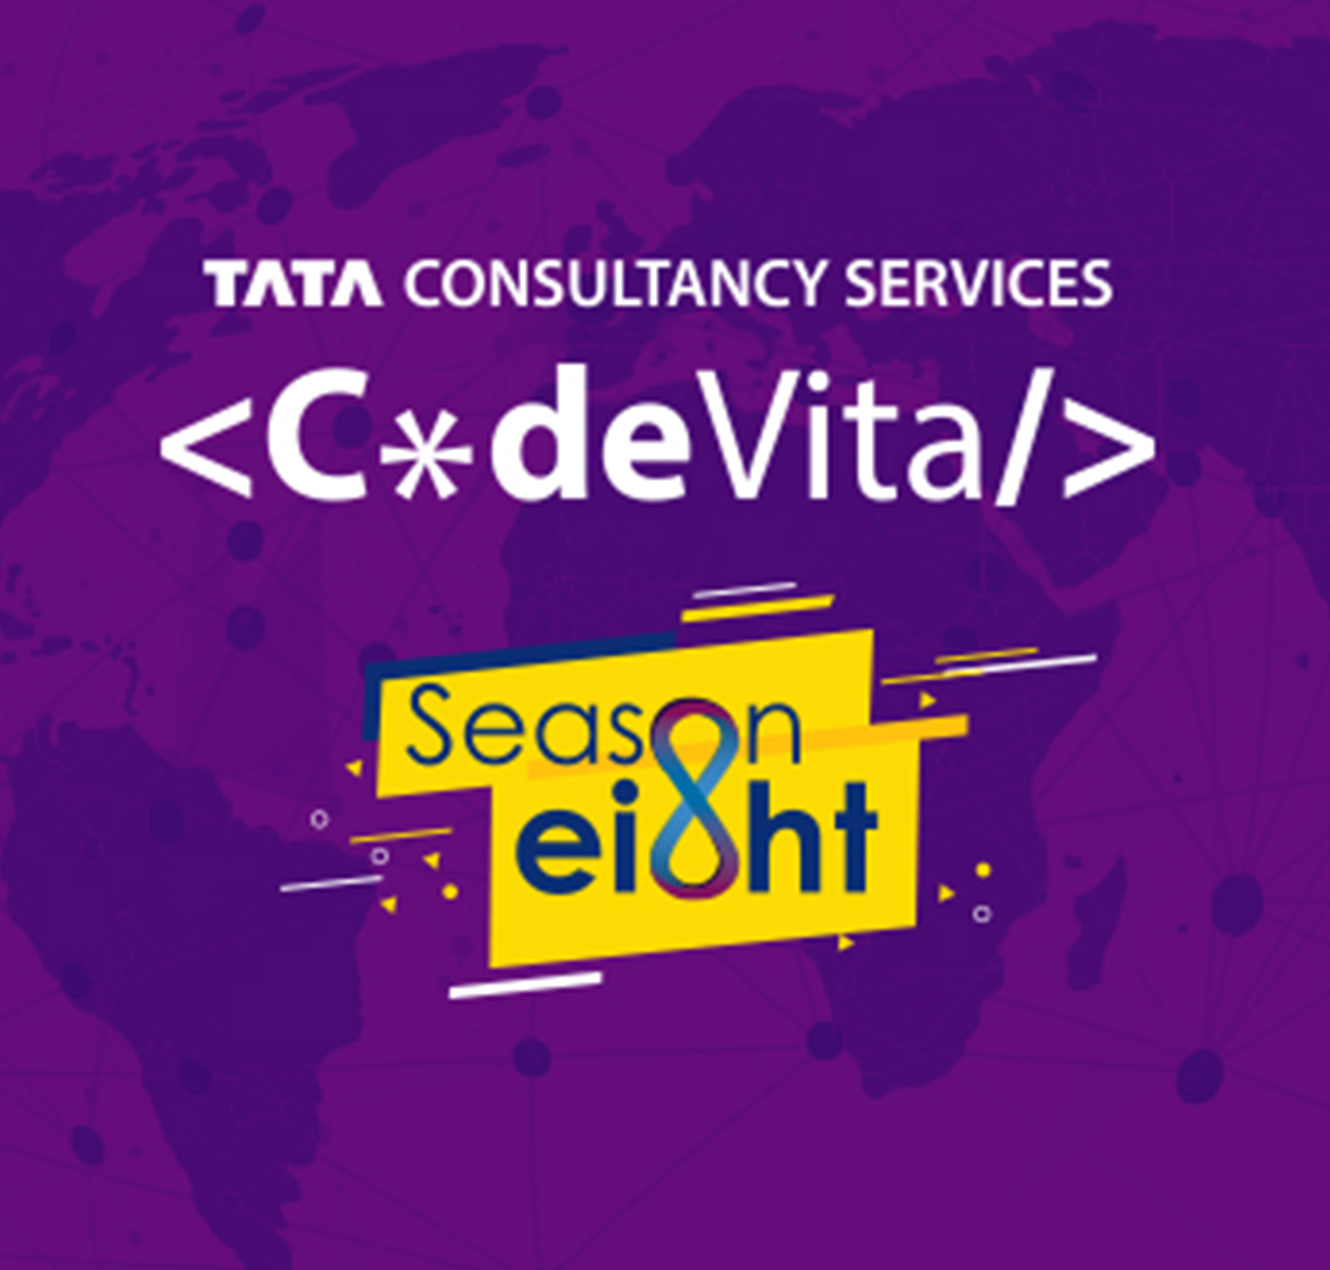 Ready to code? - Participate in TCS CodeVita